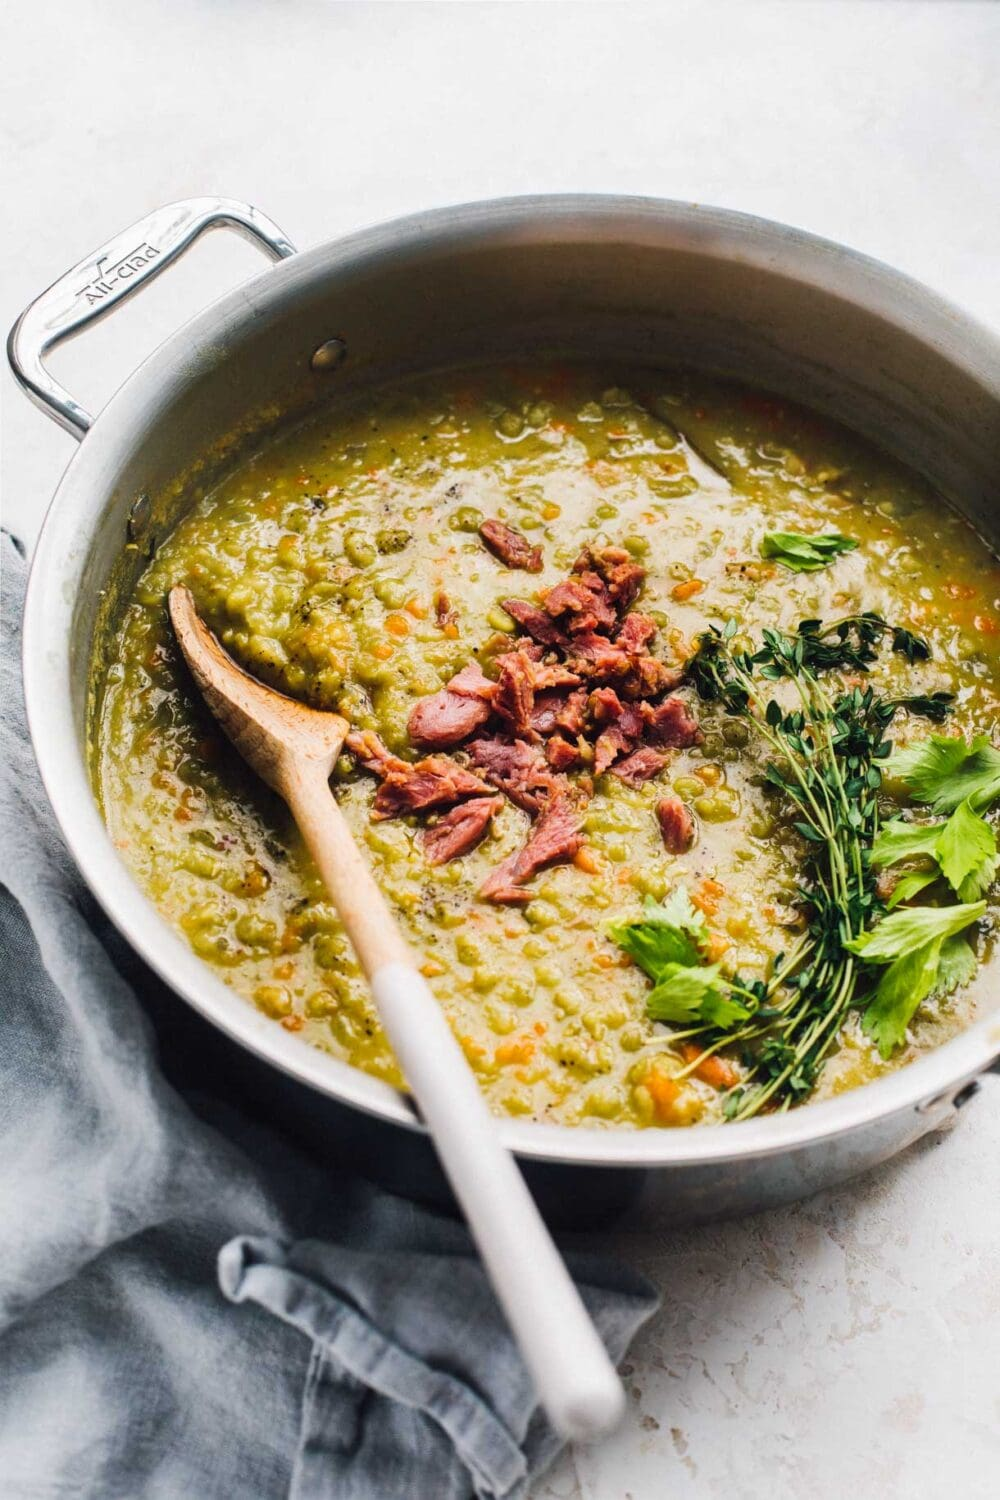 split pea soup in pot with herbs on top and wooden spoon.